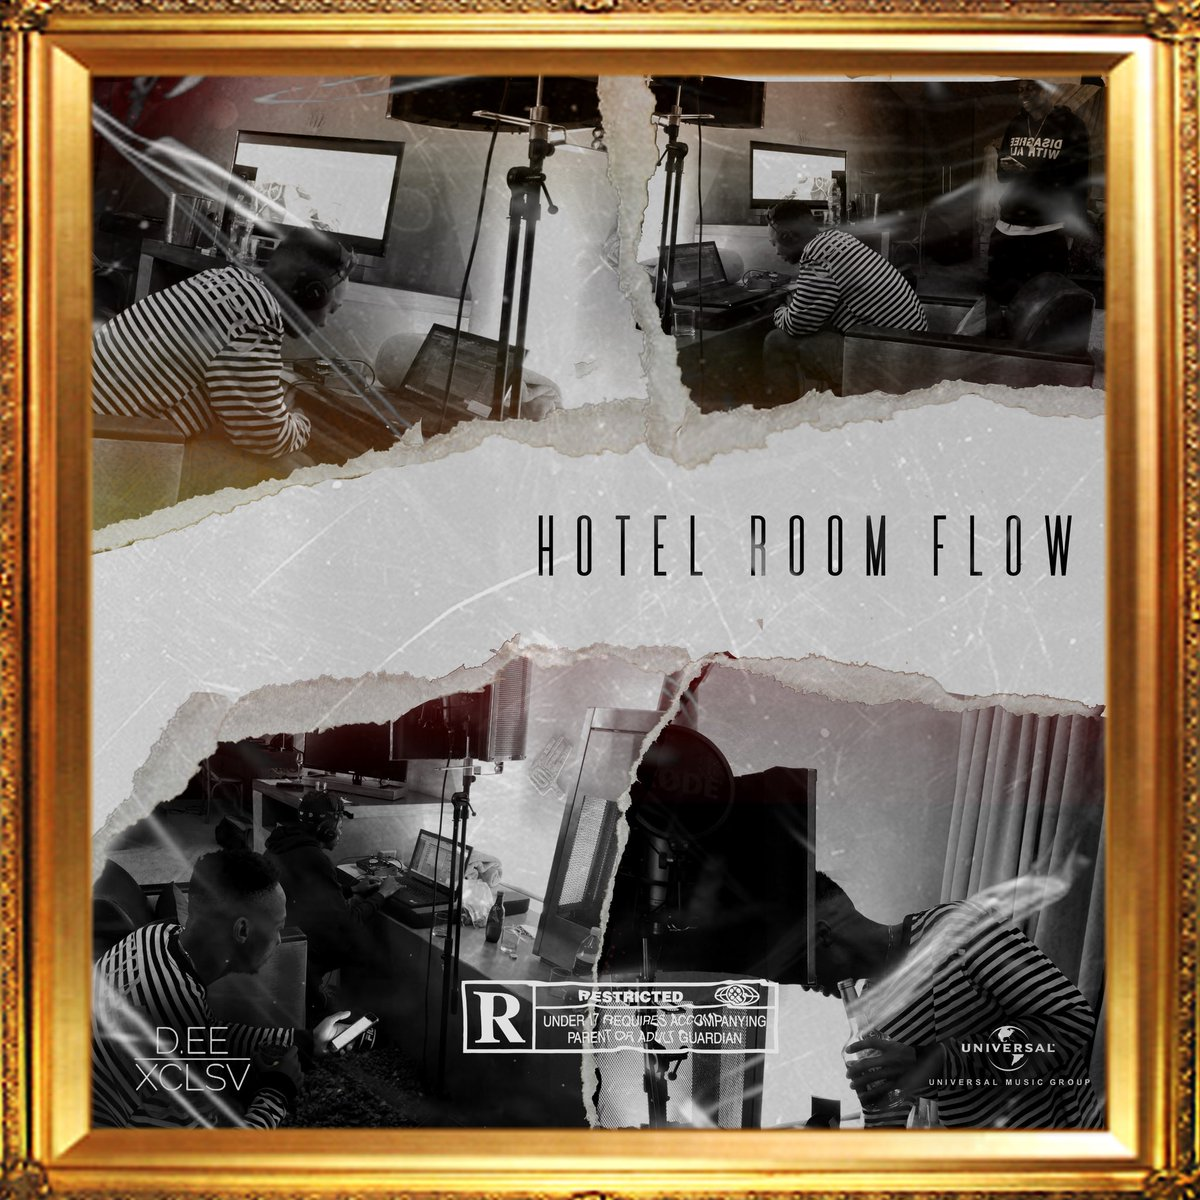 Dee Xclsv - Hotel Room Flow